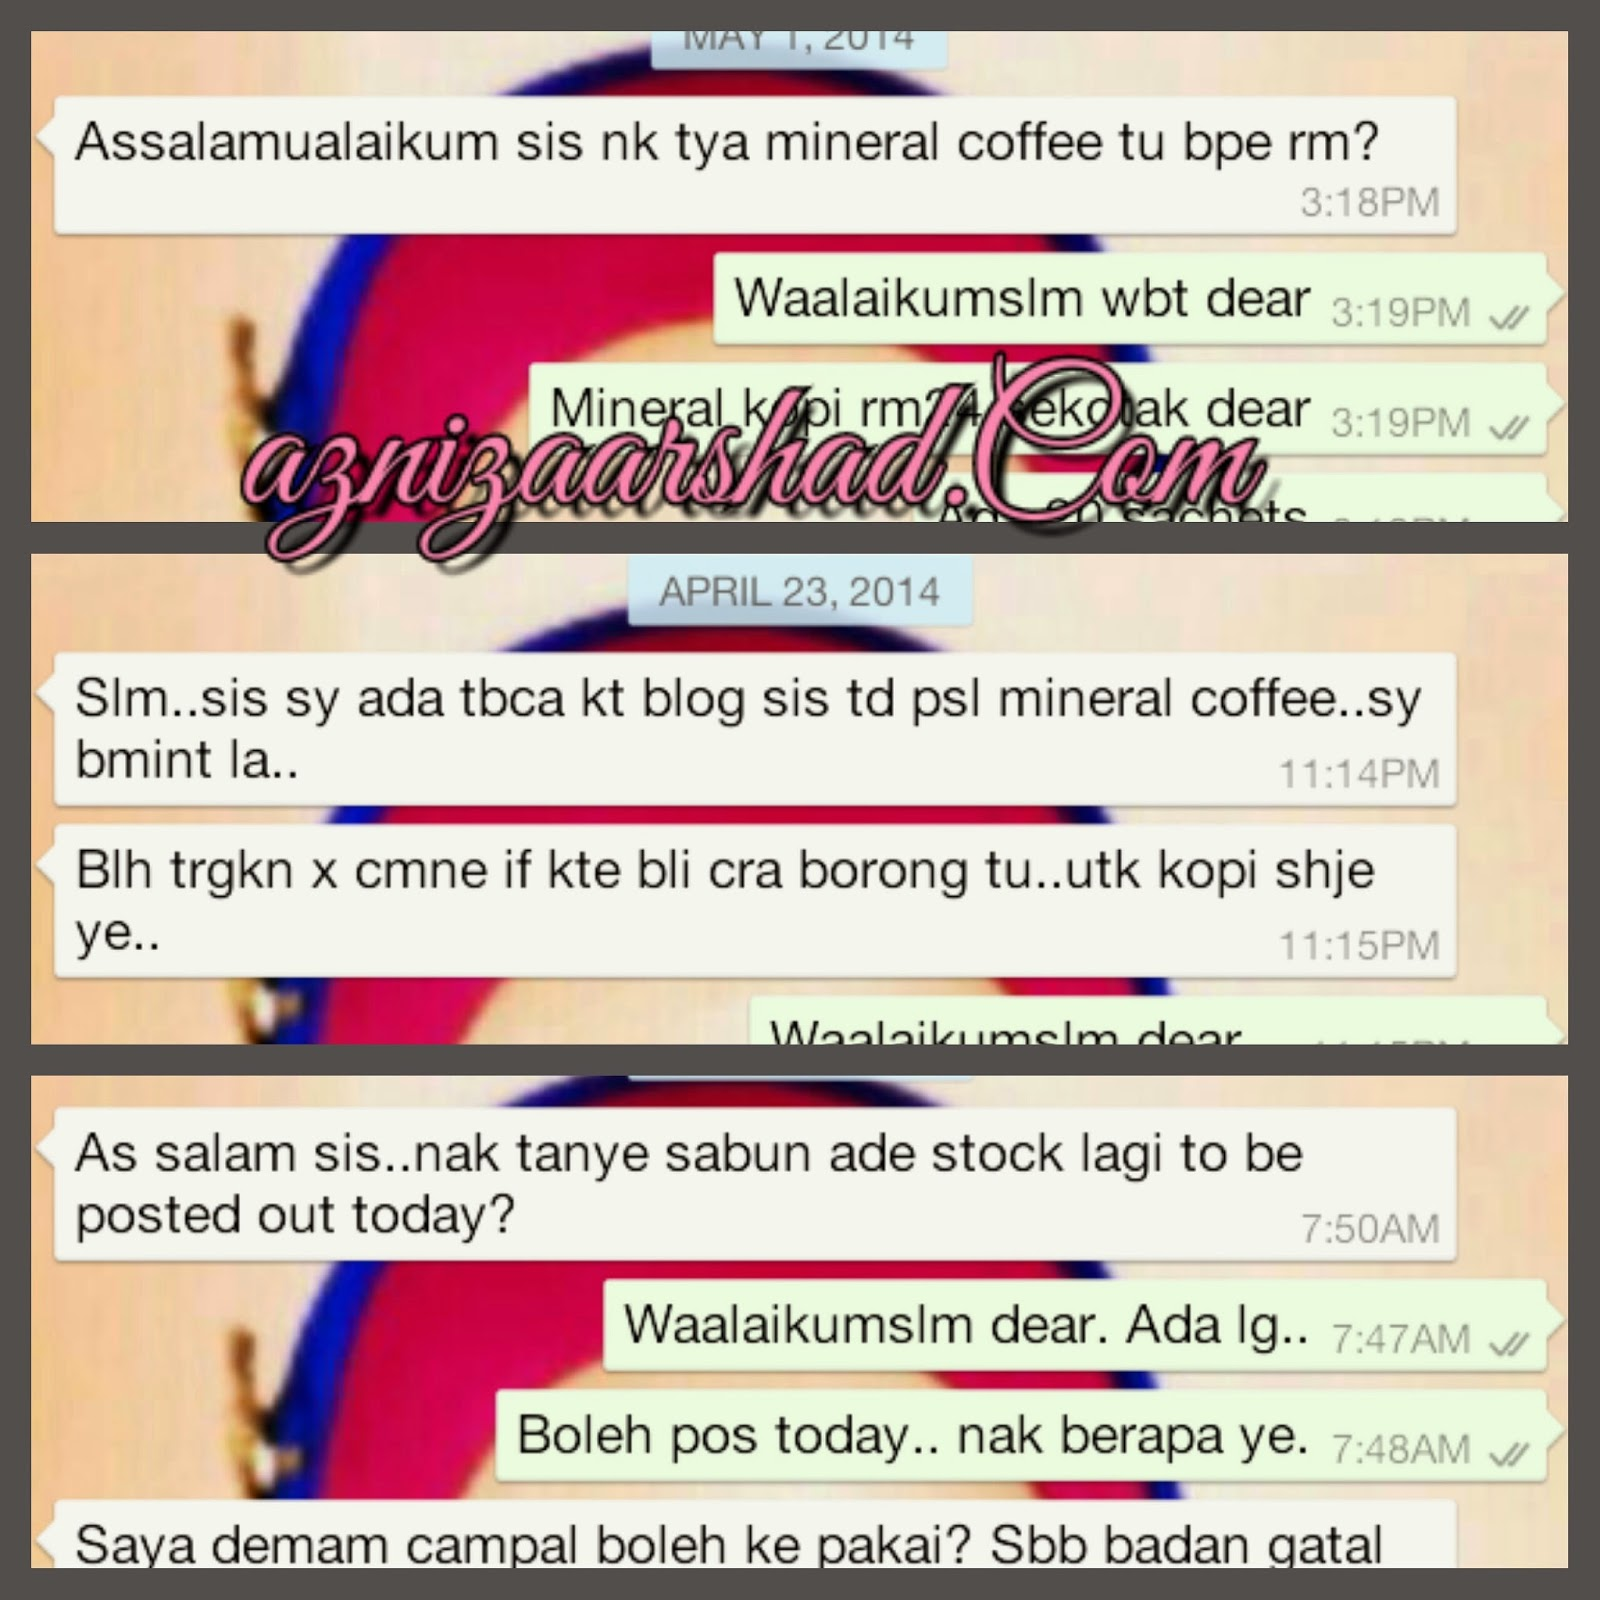 jana pendapatan, bisnes online, extra income, mineral coffee, duit raya